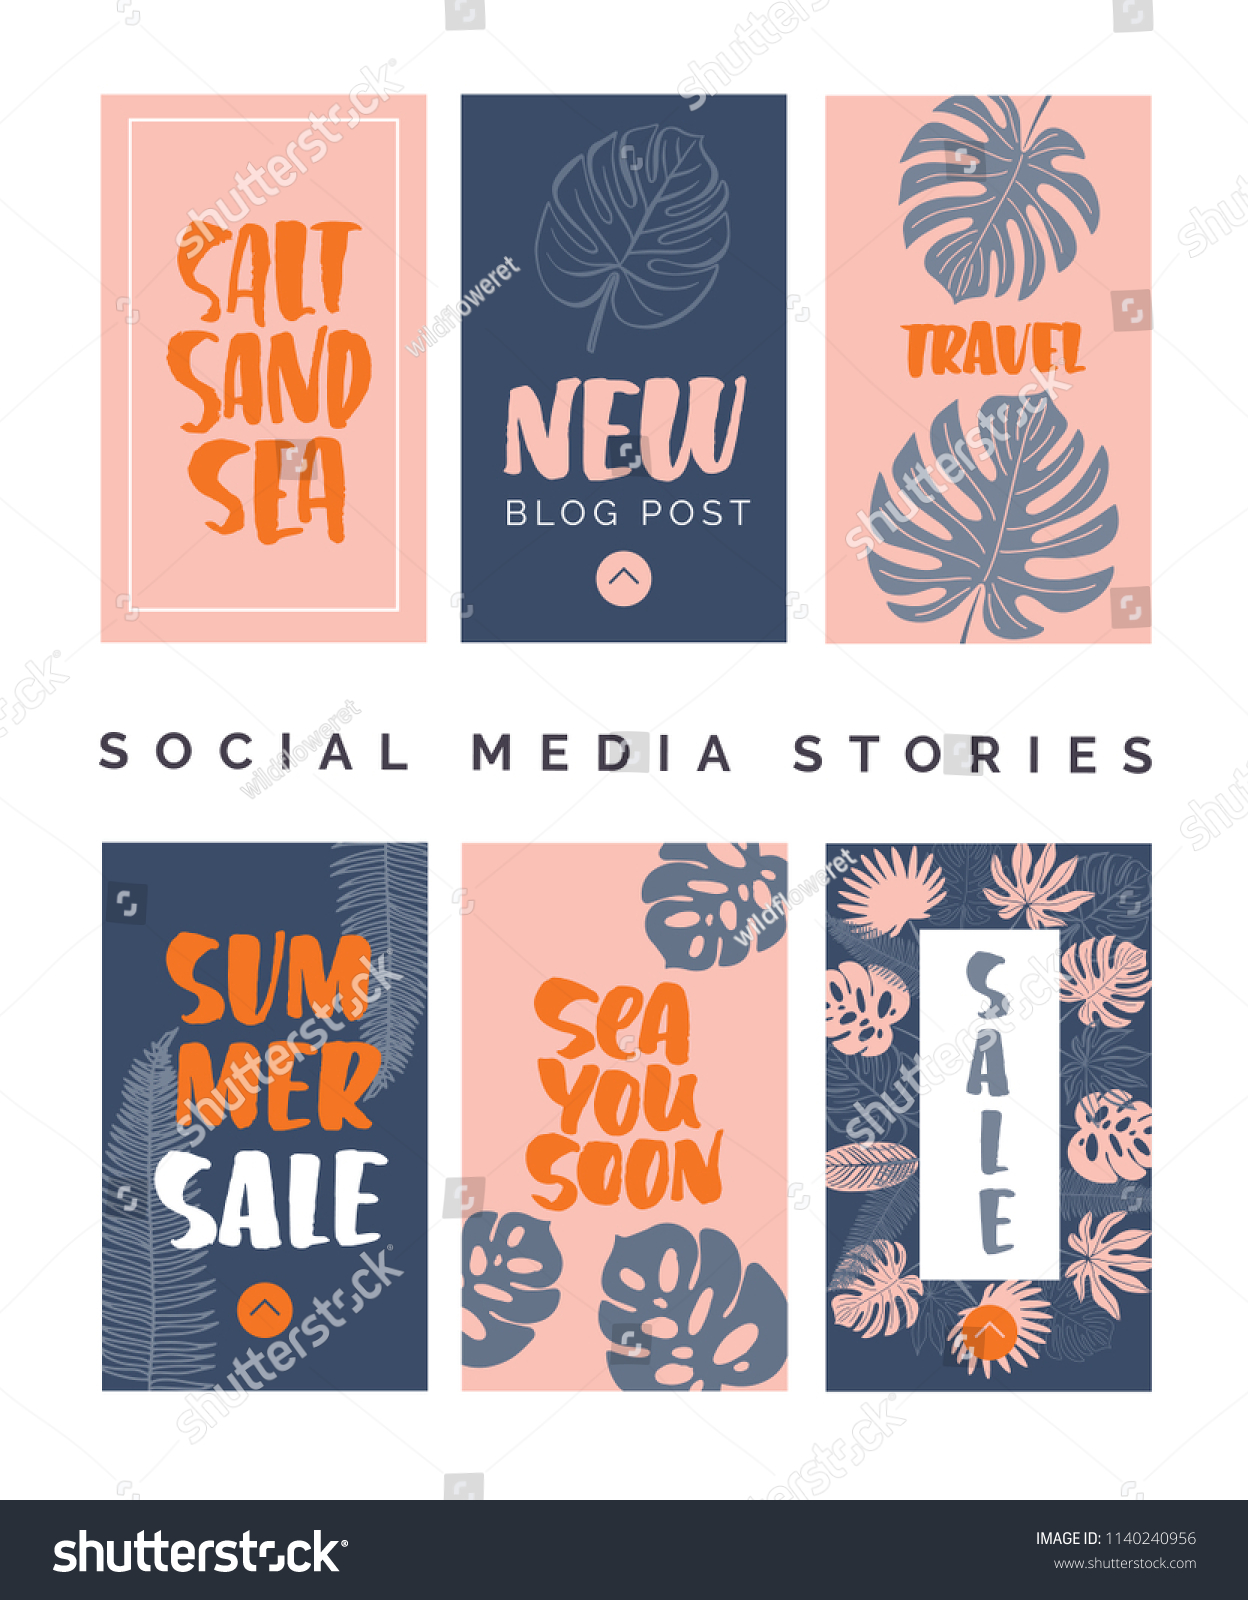 Social Media Story Templates Small Businesses Stock Vector Royalty